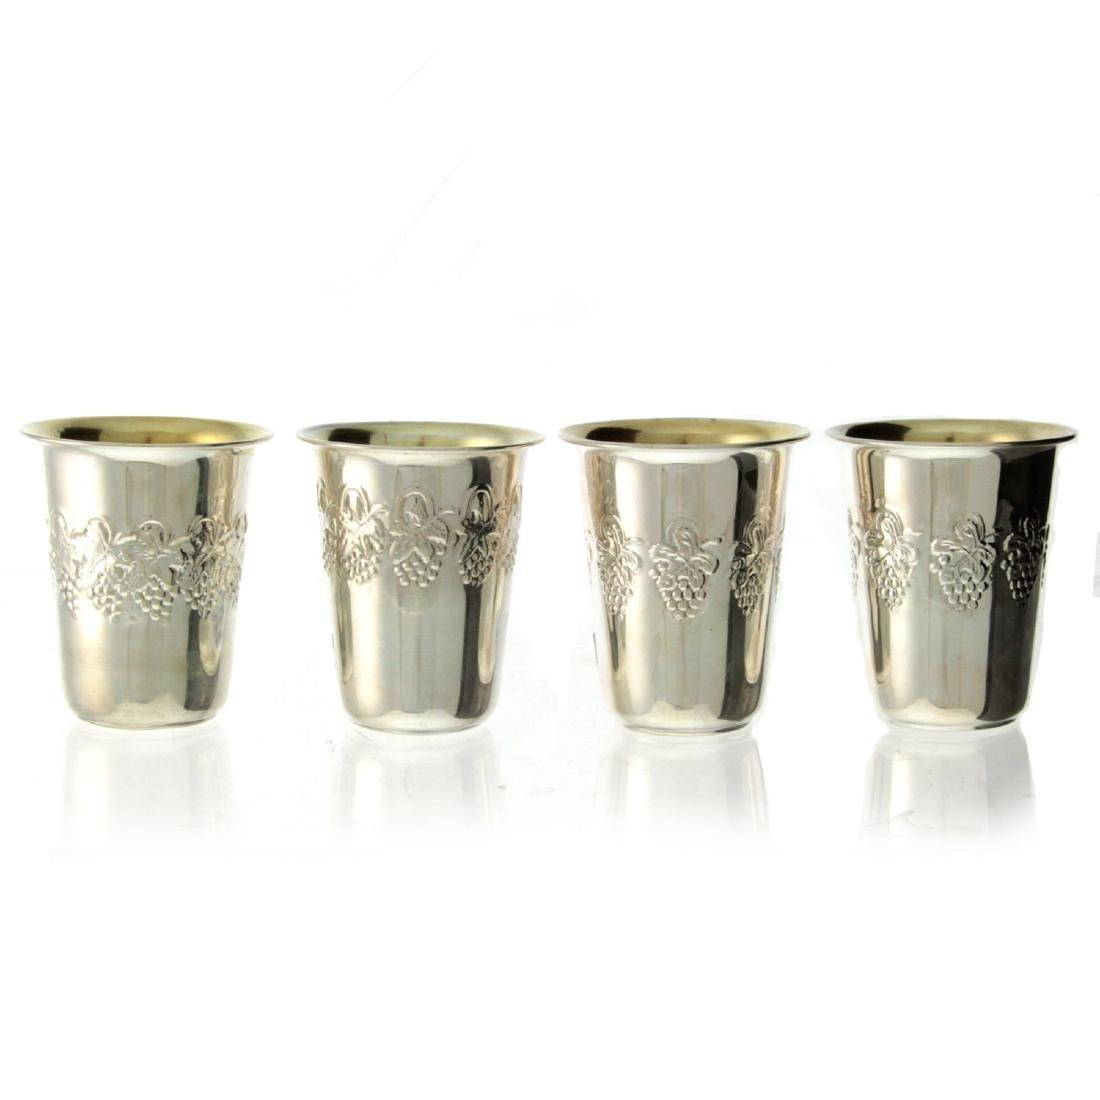 Four Sterling Silver Kiddush Cups.